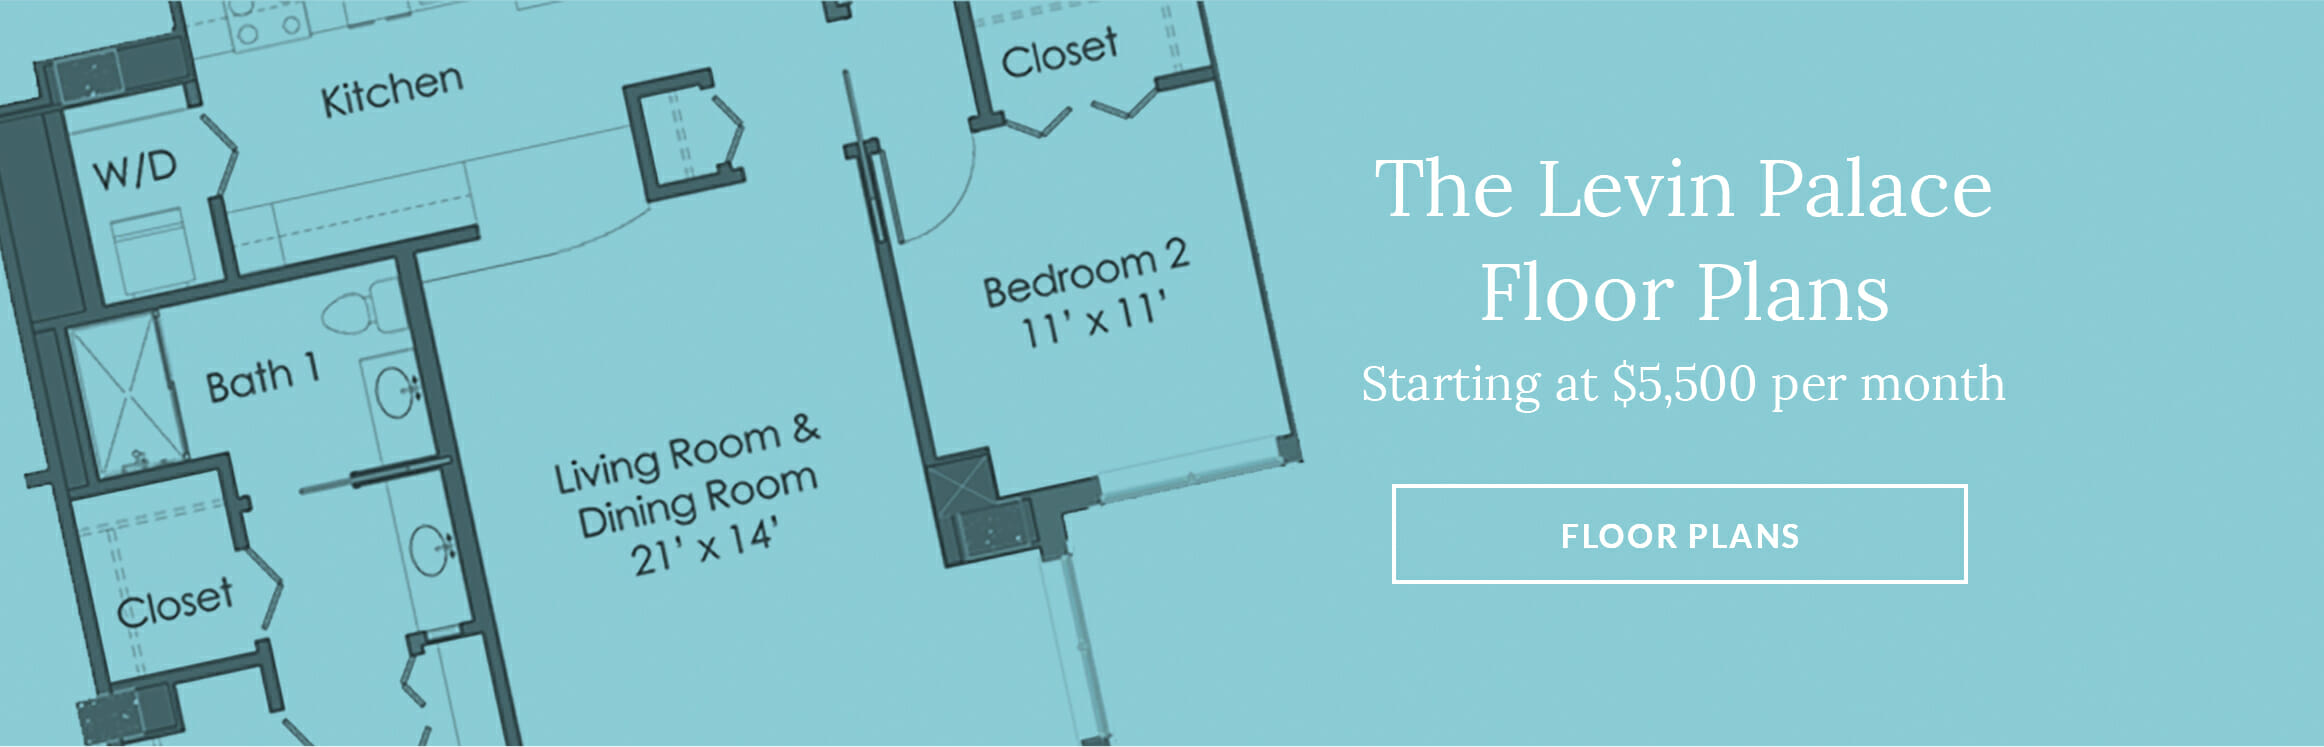 The Levin Place Luxurious Apartment Floor Plans - Starting at $5500 per month